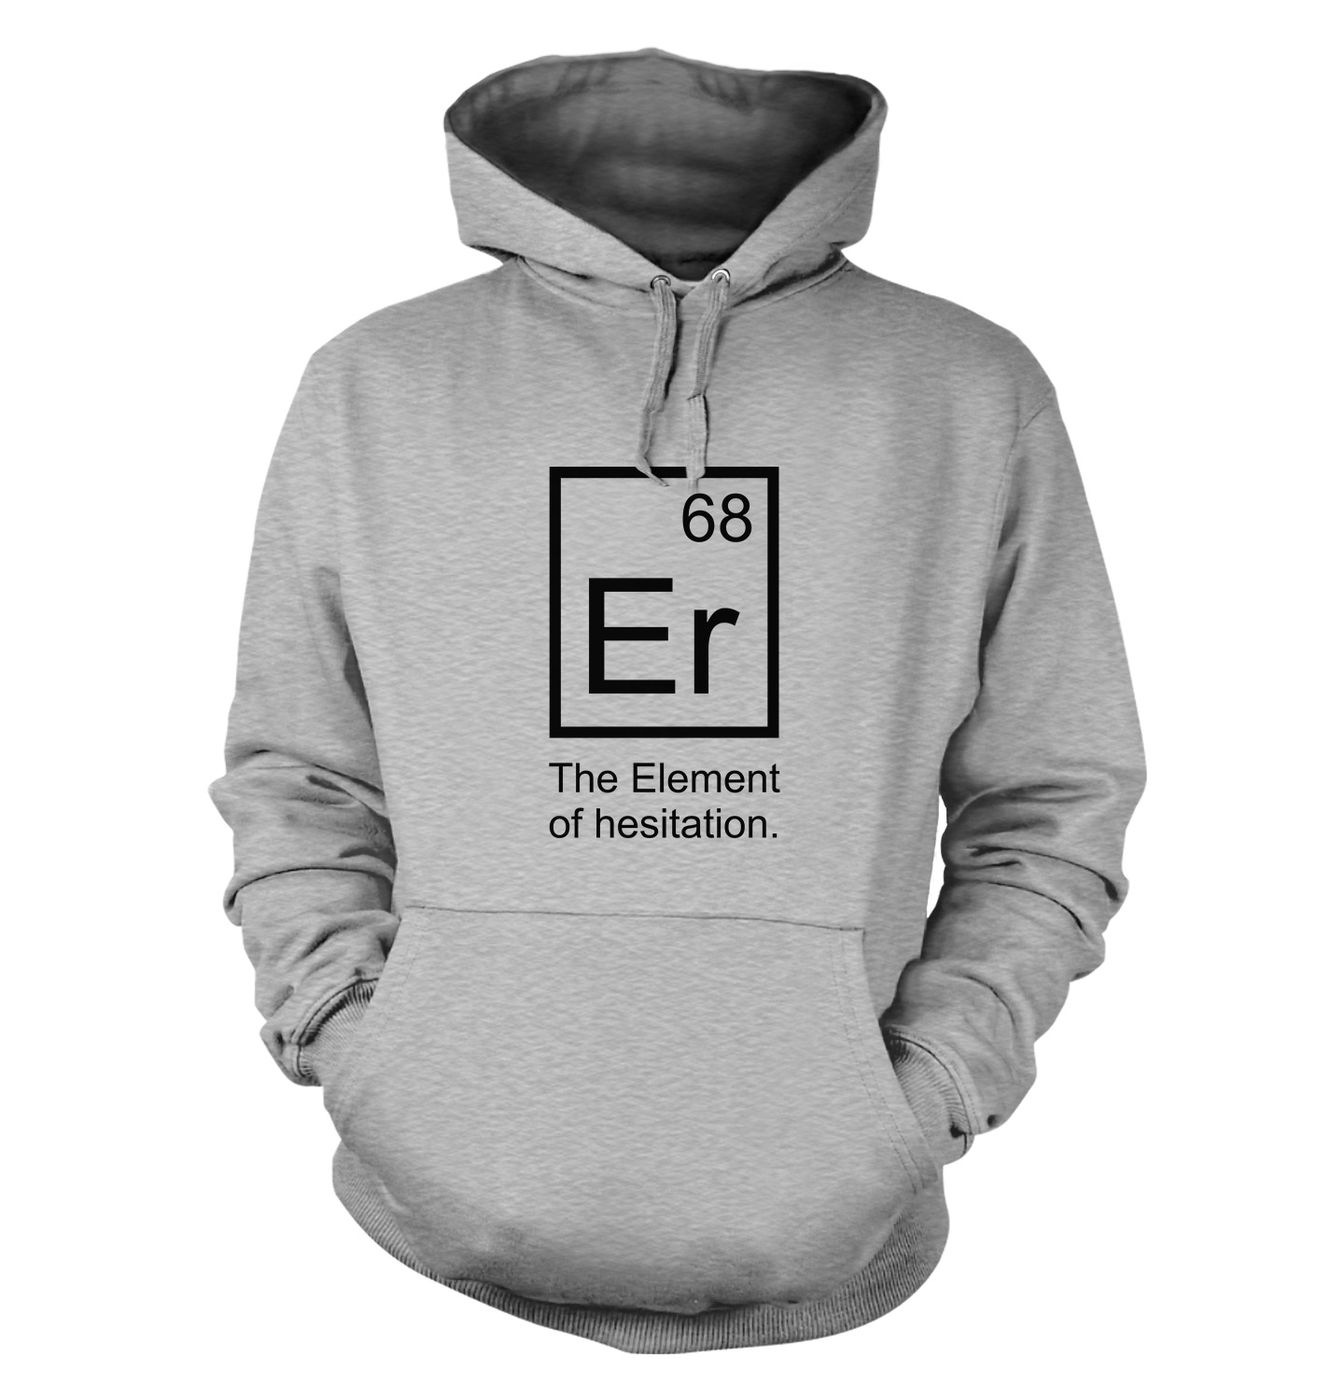 Er the element of hesitation  - adult unisex hooide